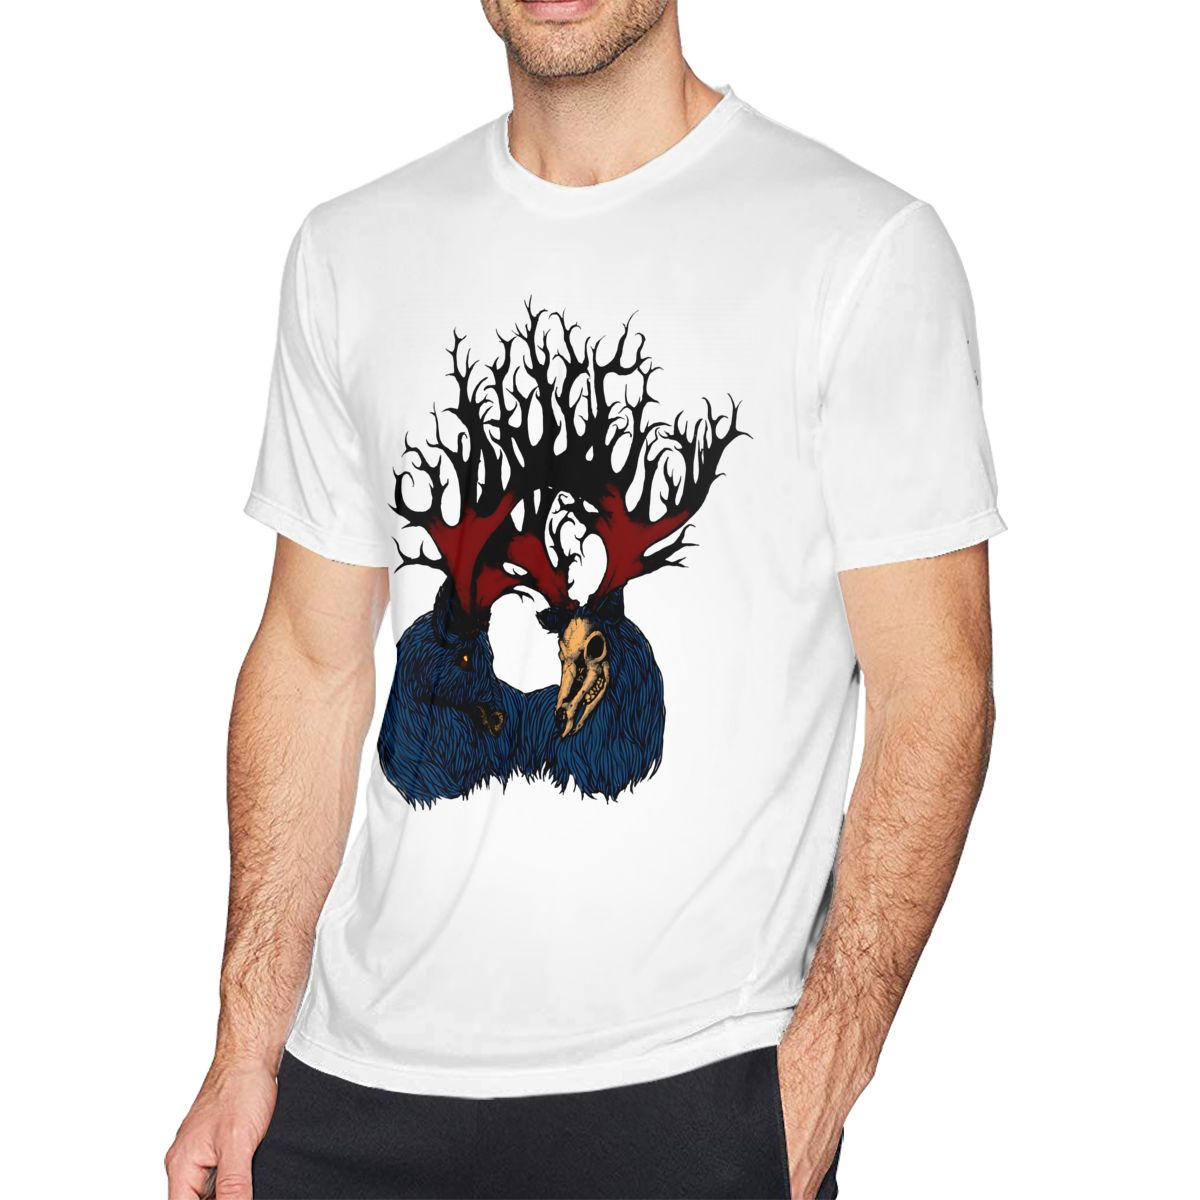 Deer T Shirt The Heart Of The Forest T-Shirt Men Classic Tee Shirt Printed Short Sleeves Plus size Tshirt